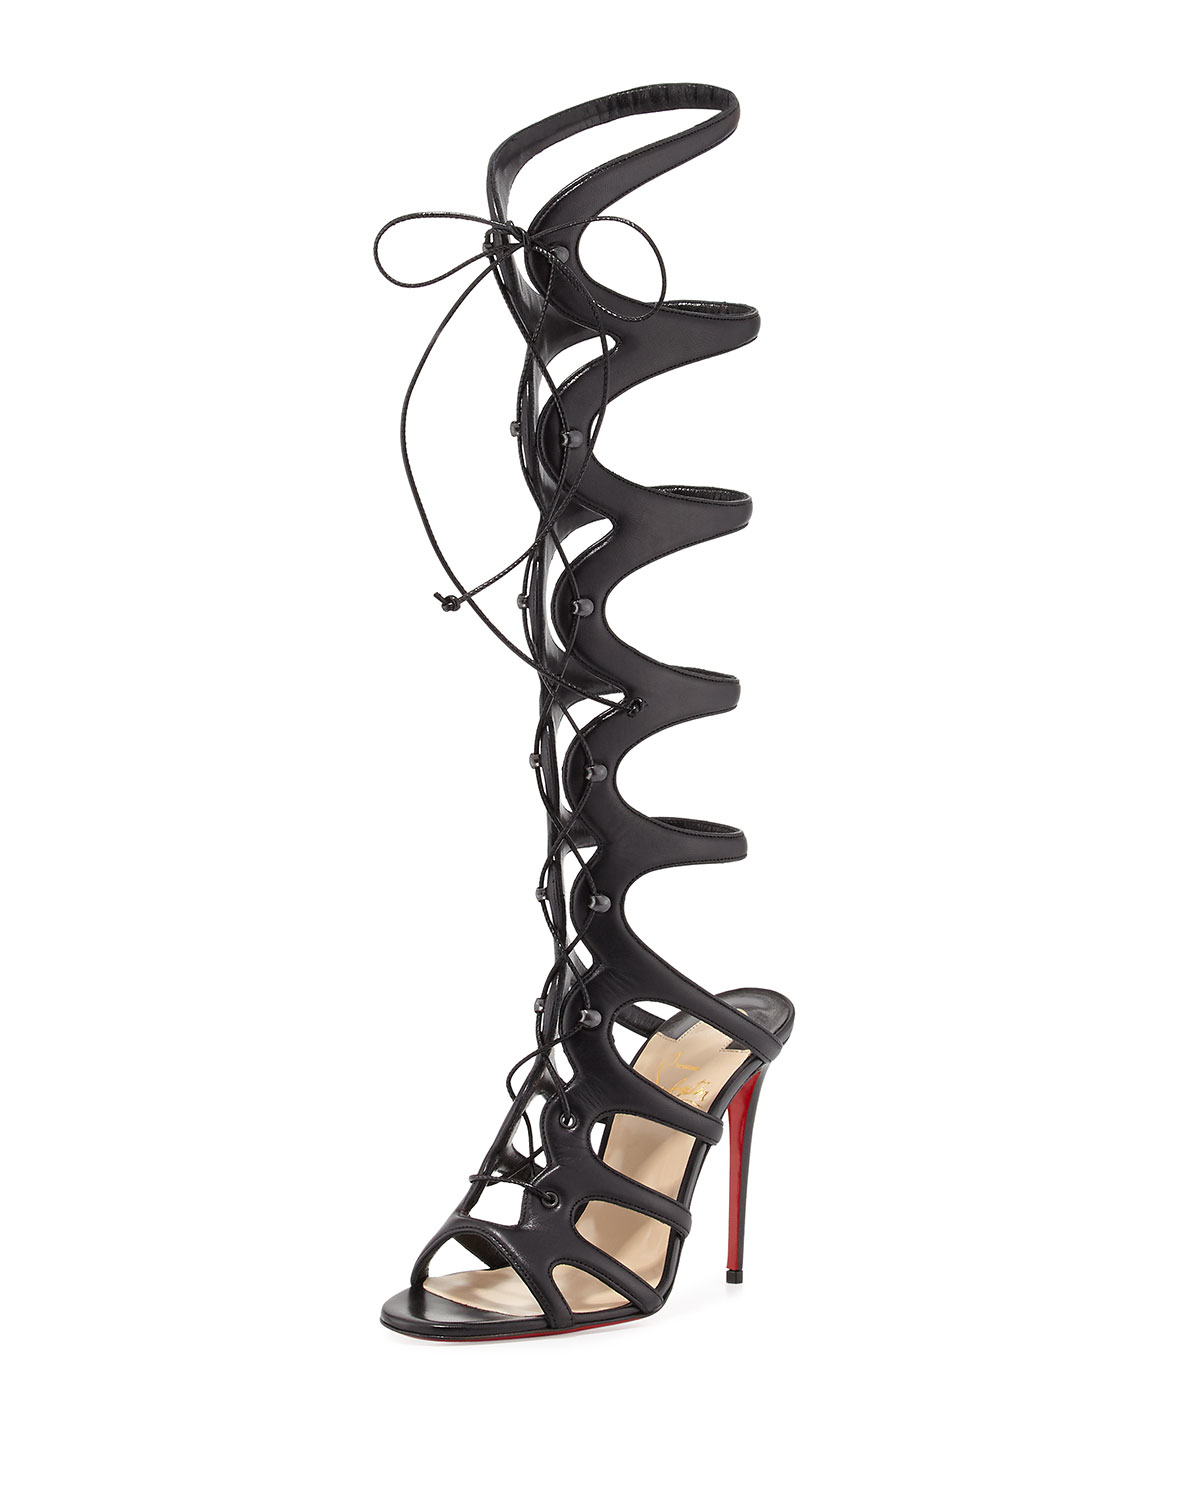 cheap louis vuitton mens shoes - Christian louboutin Amazoula Lace-Up Leather Gladiator Sandals in ...